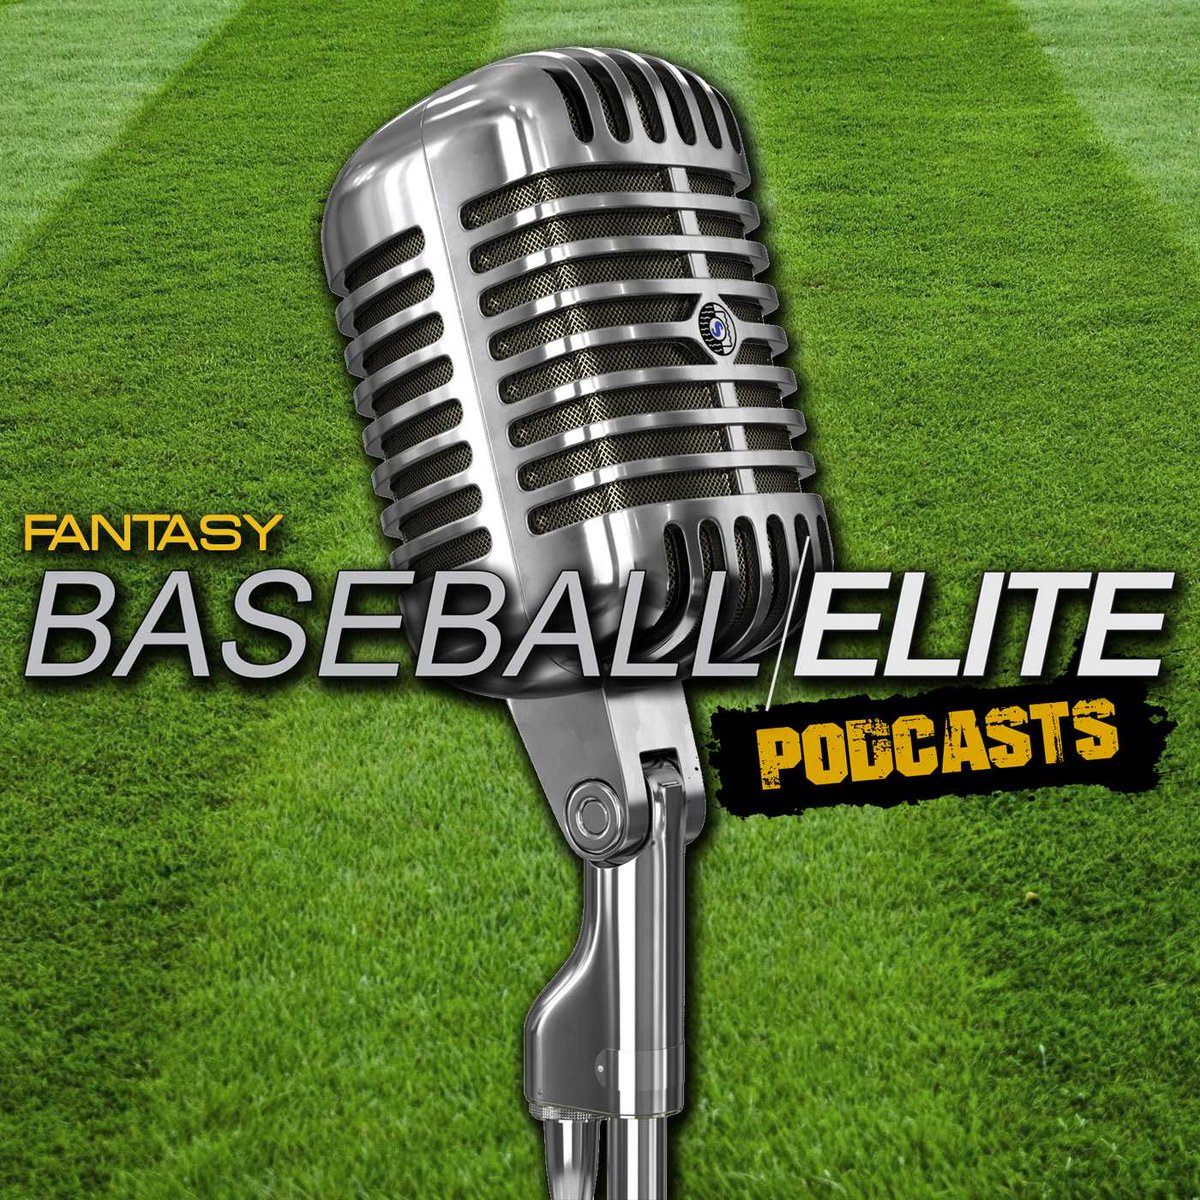 FREE PODCAST from @BaseballGuys and  @Jeff_Mans - impact of Bryce Harper signing in PHI, injuries to Luis Severino, Salvador Perez, Miguel Sano. also the recent LABR auction drafts & discuss their favorite auction draft strategies. https://www.fantasyguru.com/mlb/podcasts/fantasy-baseball-elite-podcast-episode-7…